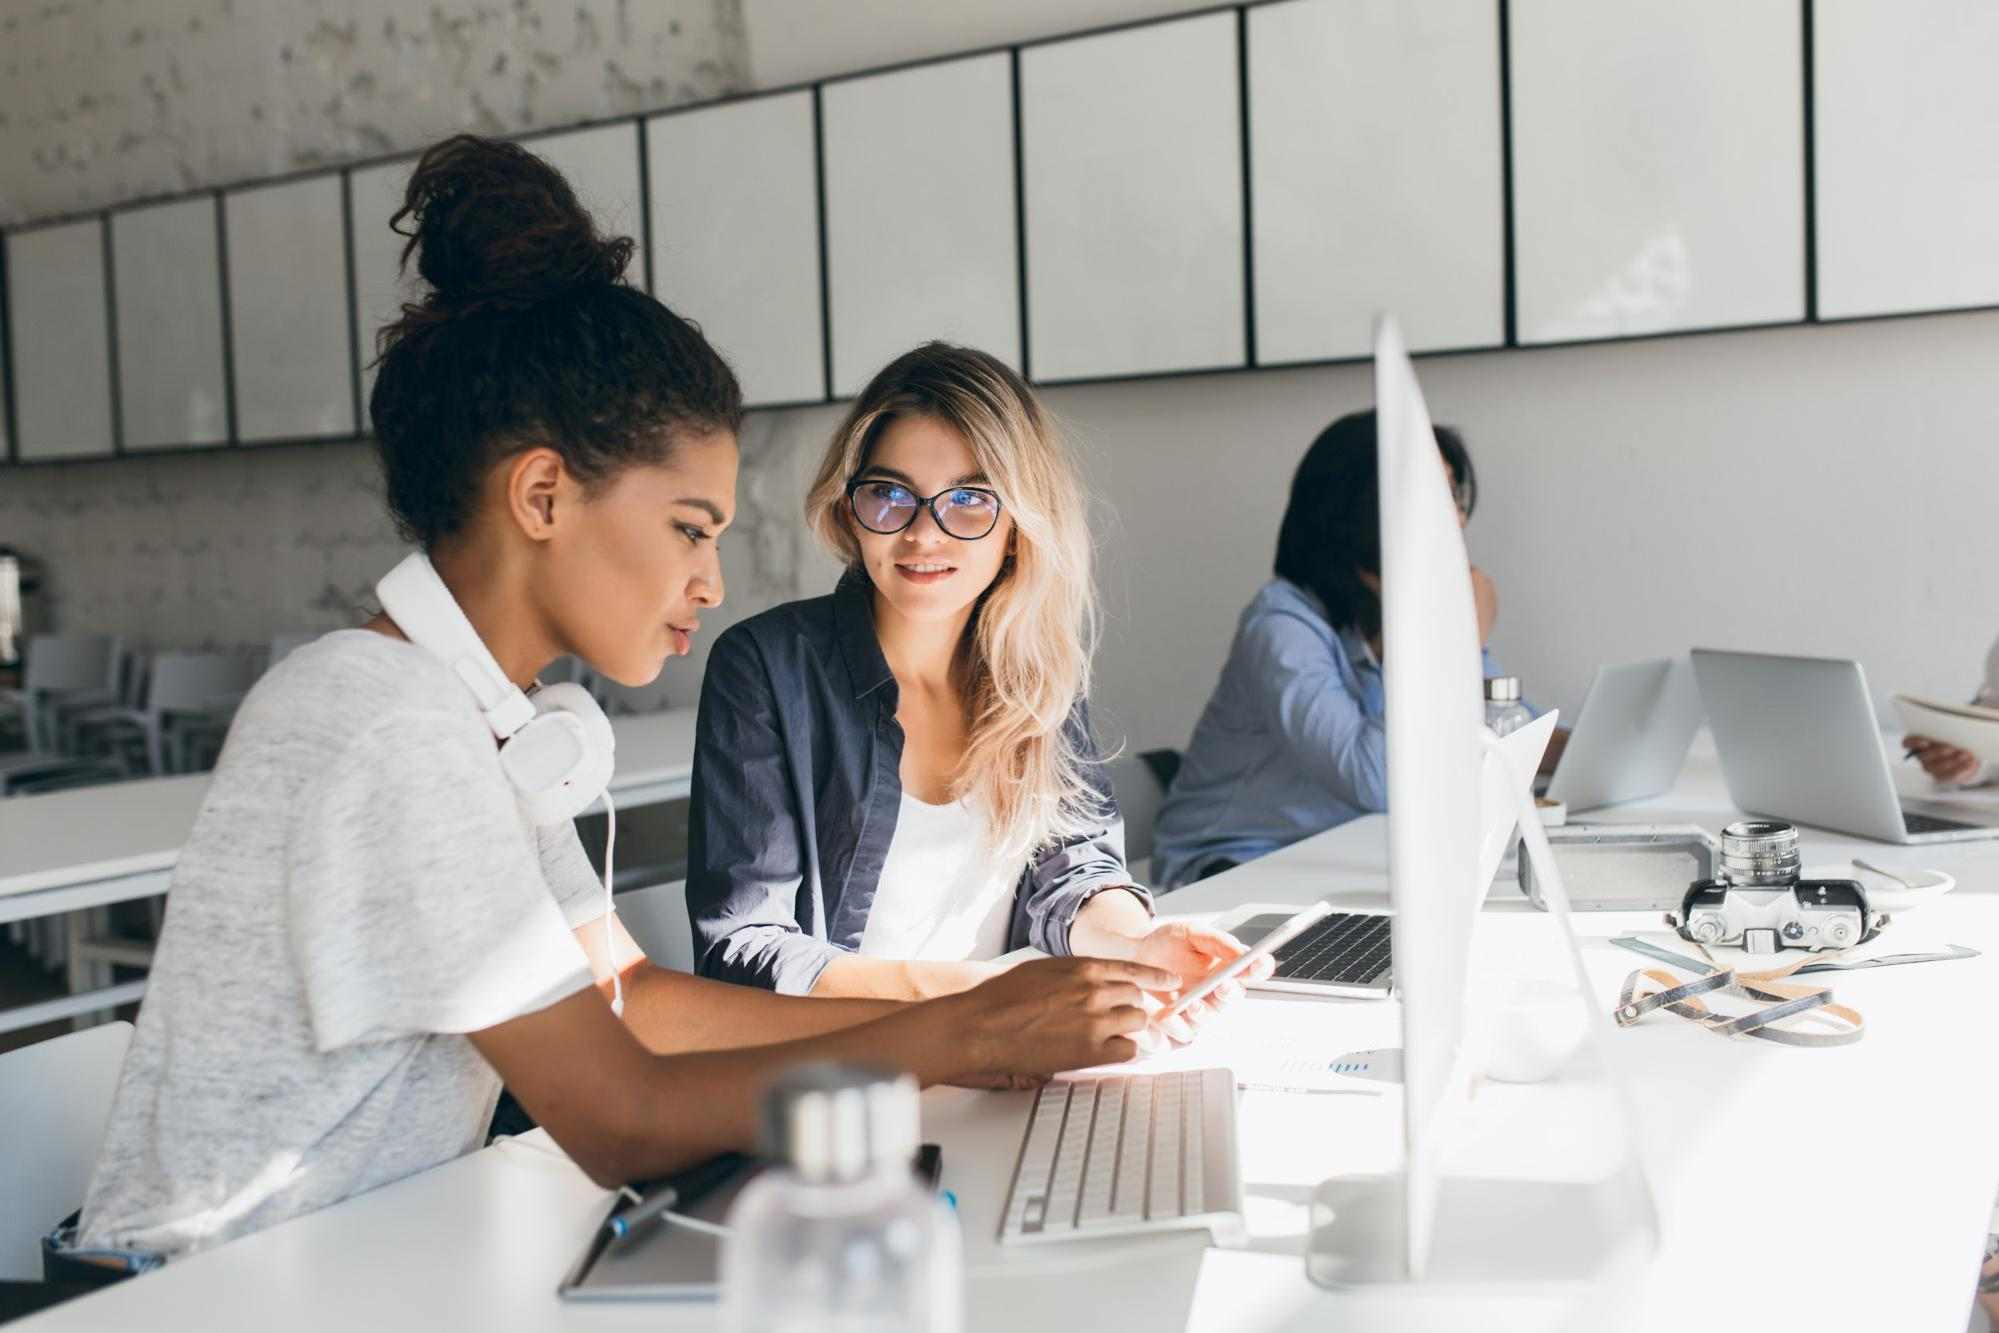 entry level IT jobs: woman showing her phone to the other woman